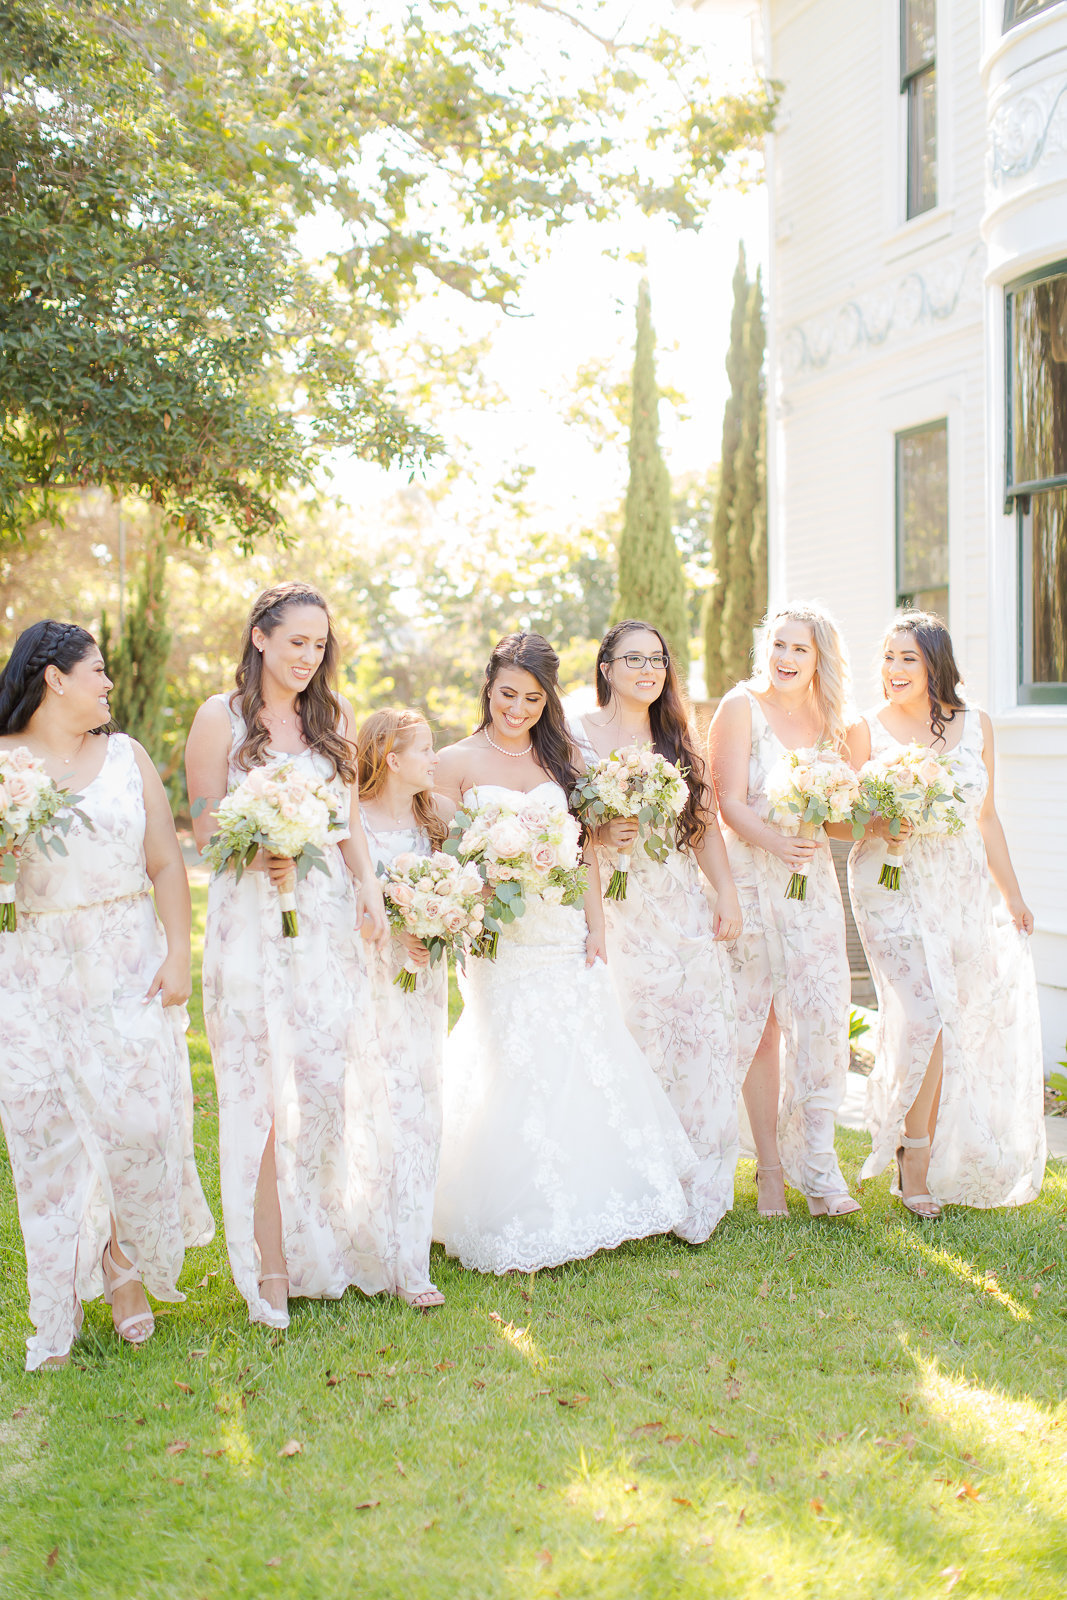 Bride and Groom Wedding Photo Ideas Theresa Bridget Photography Photo-249